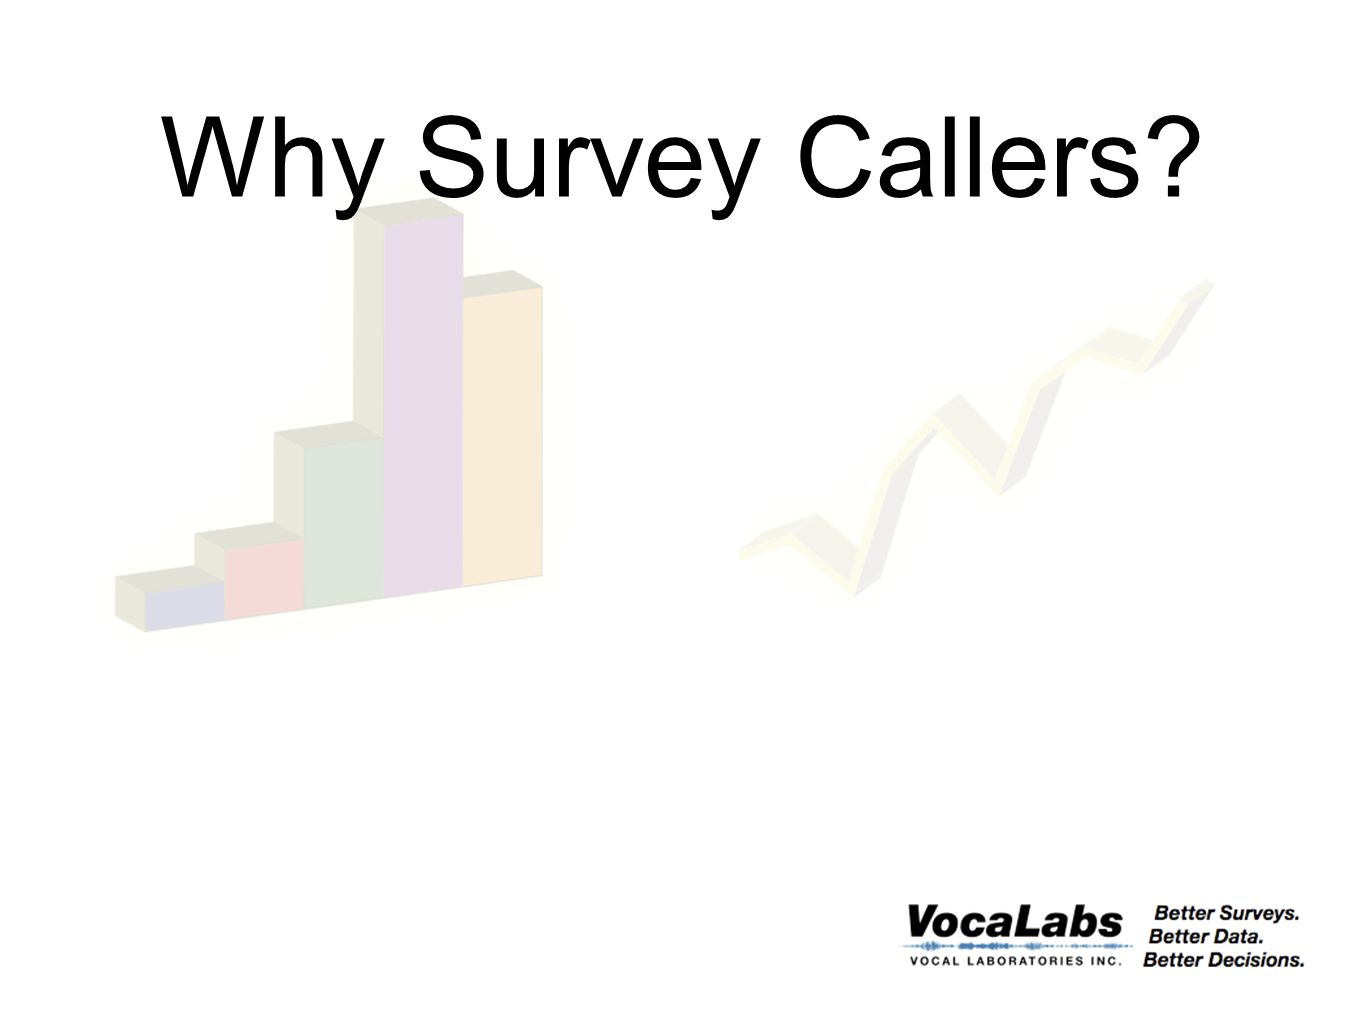 Why Survey Callers